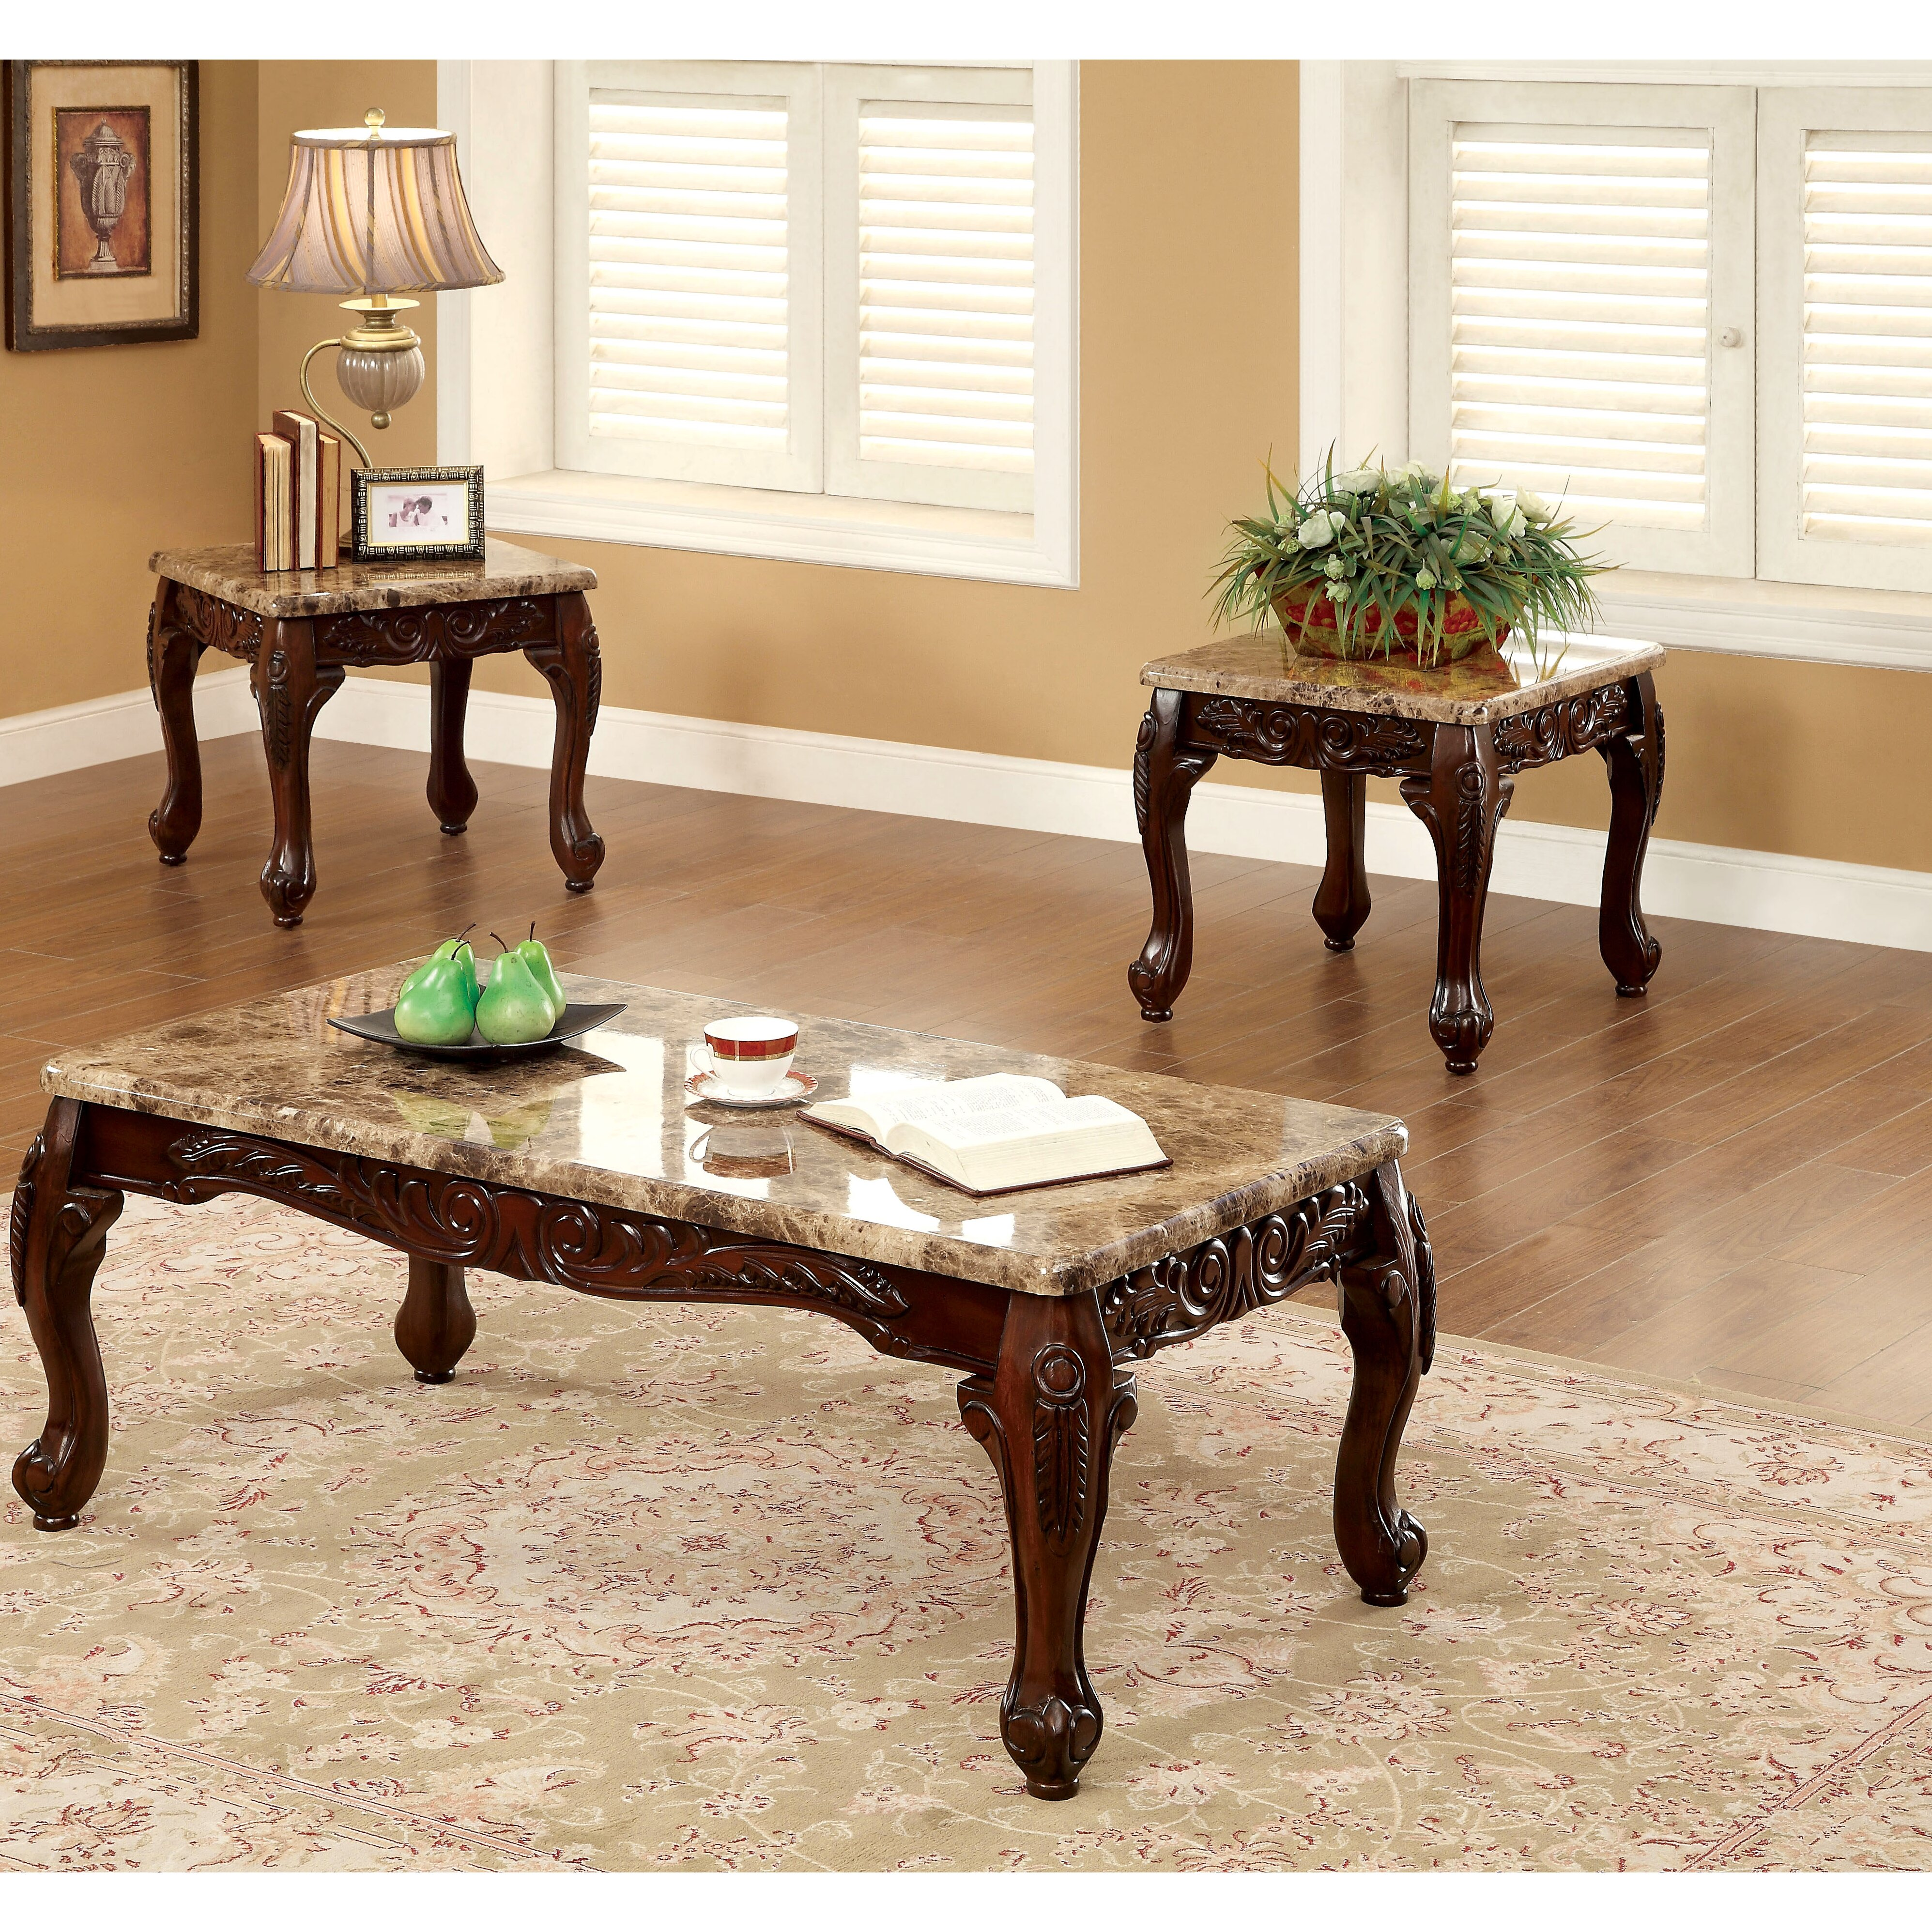 3 Piece Living Room Table Set Astoria Grand Albertus 3 Piece Coffee Table Set Reviews Wayfair